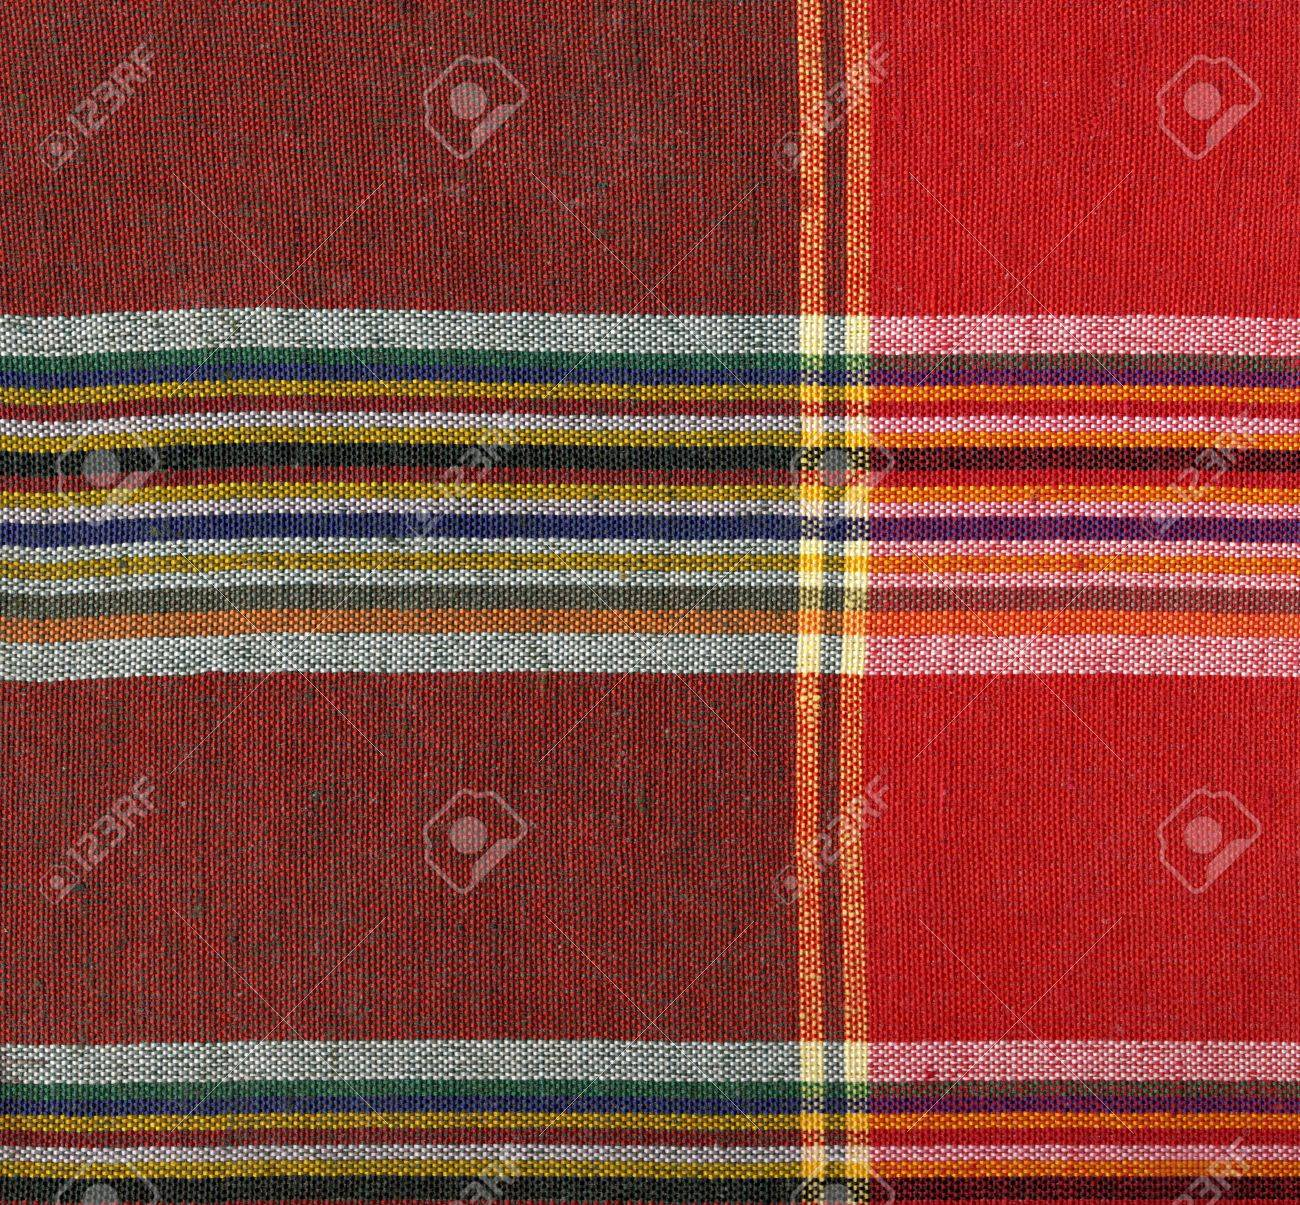 Red and yellow square fabric pattern background Stock Photo - 16683585